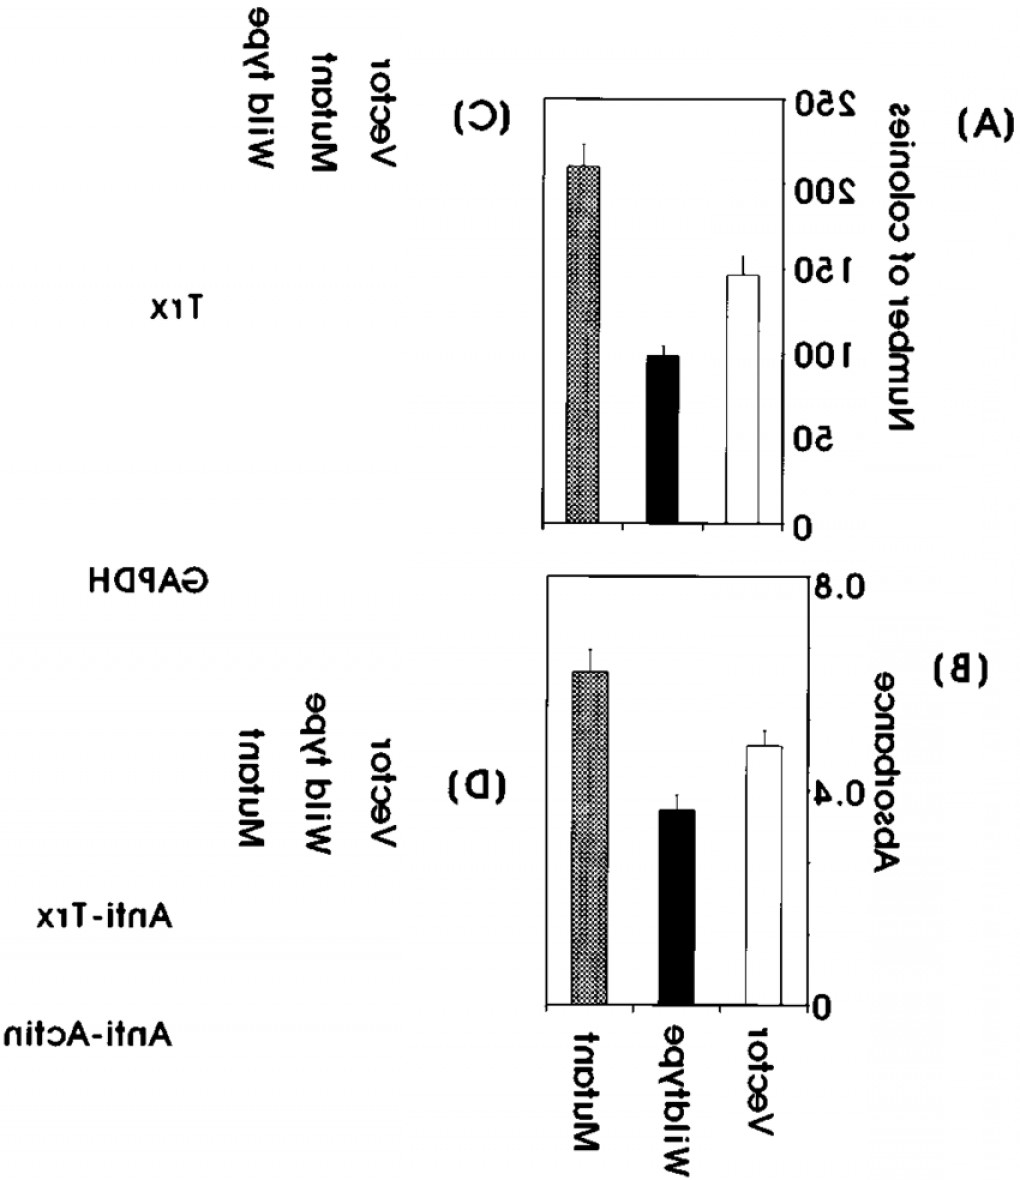 Mammalian Expression Vector: Death Promoting Eect Of Trx A Overexpression Of Trx Results In A Loss Of Cellfig